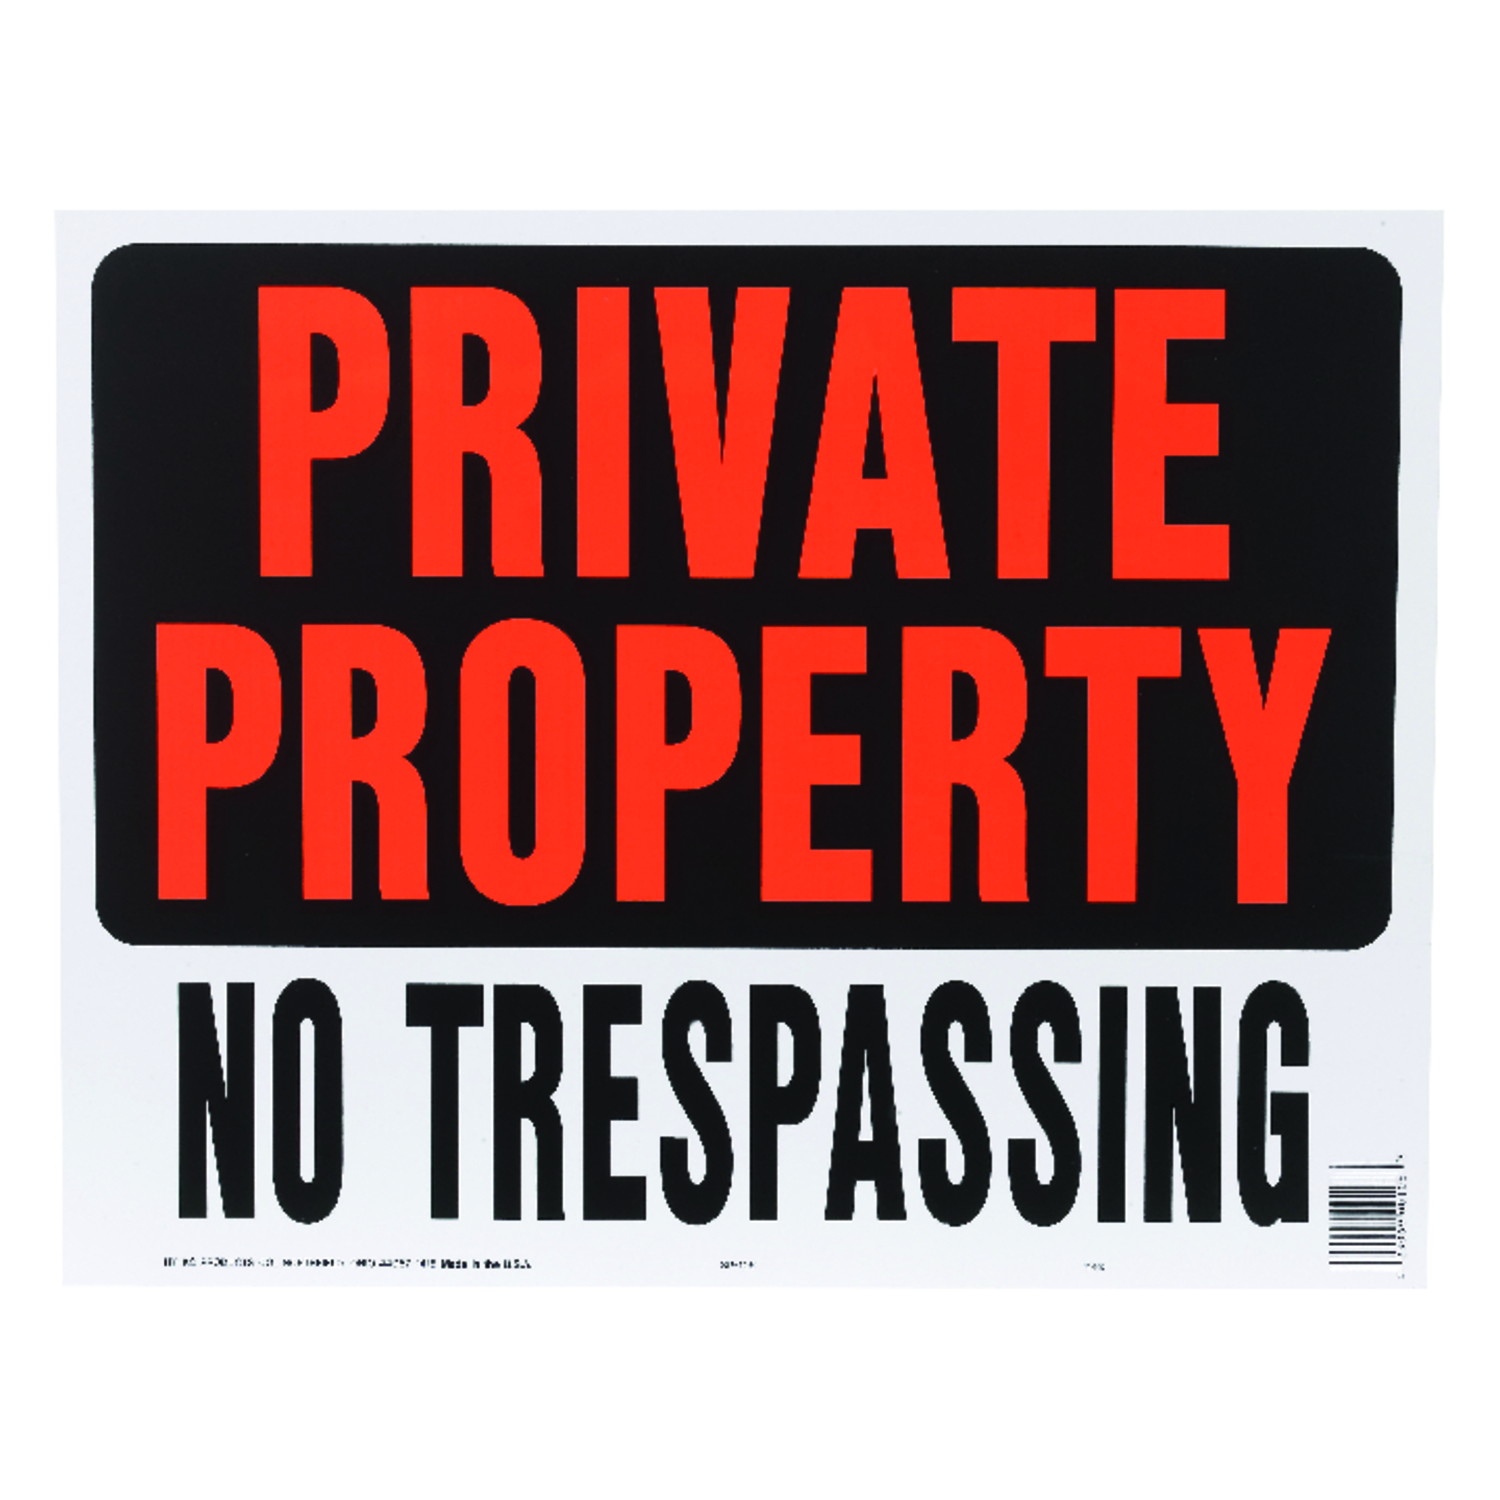 Hy-Ko  English  19 in. W x 15 in. H Private Property / No Trespassing  Sign  Plastic